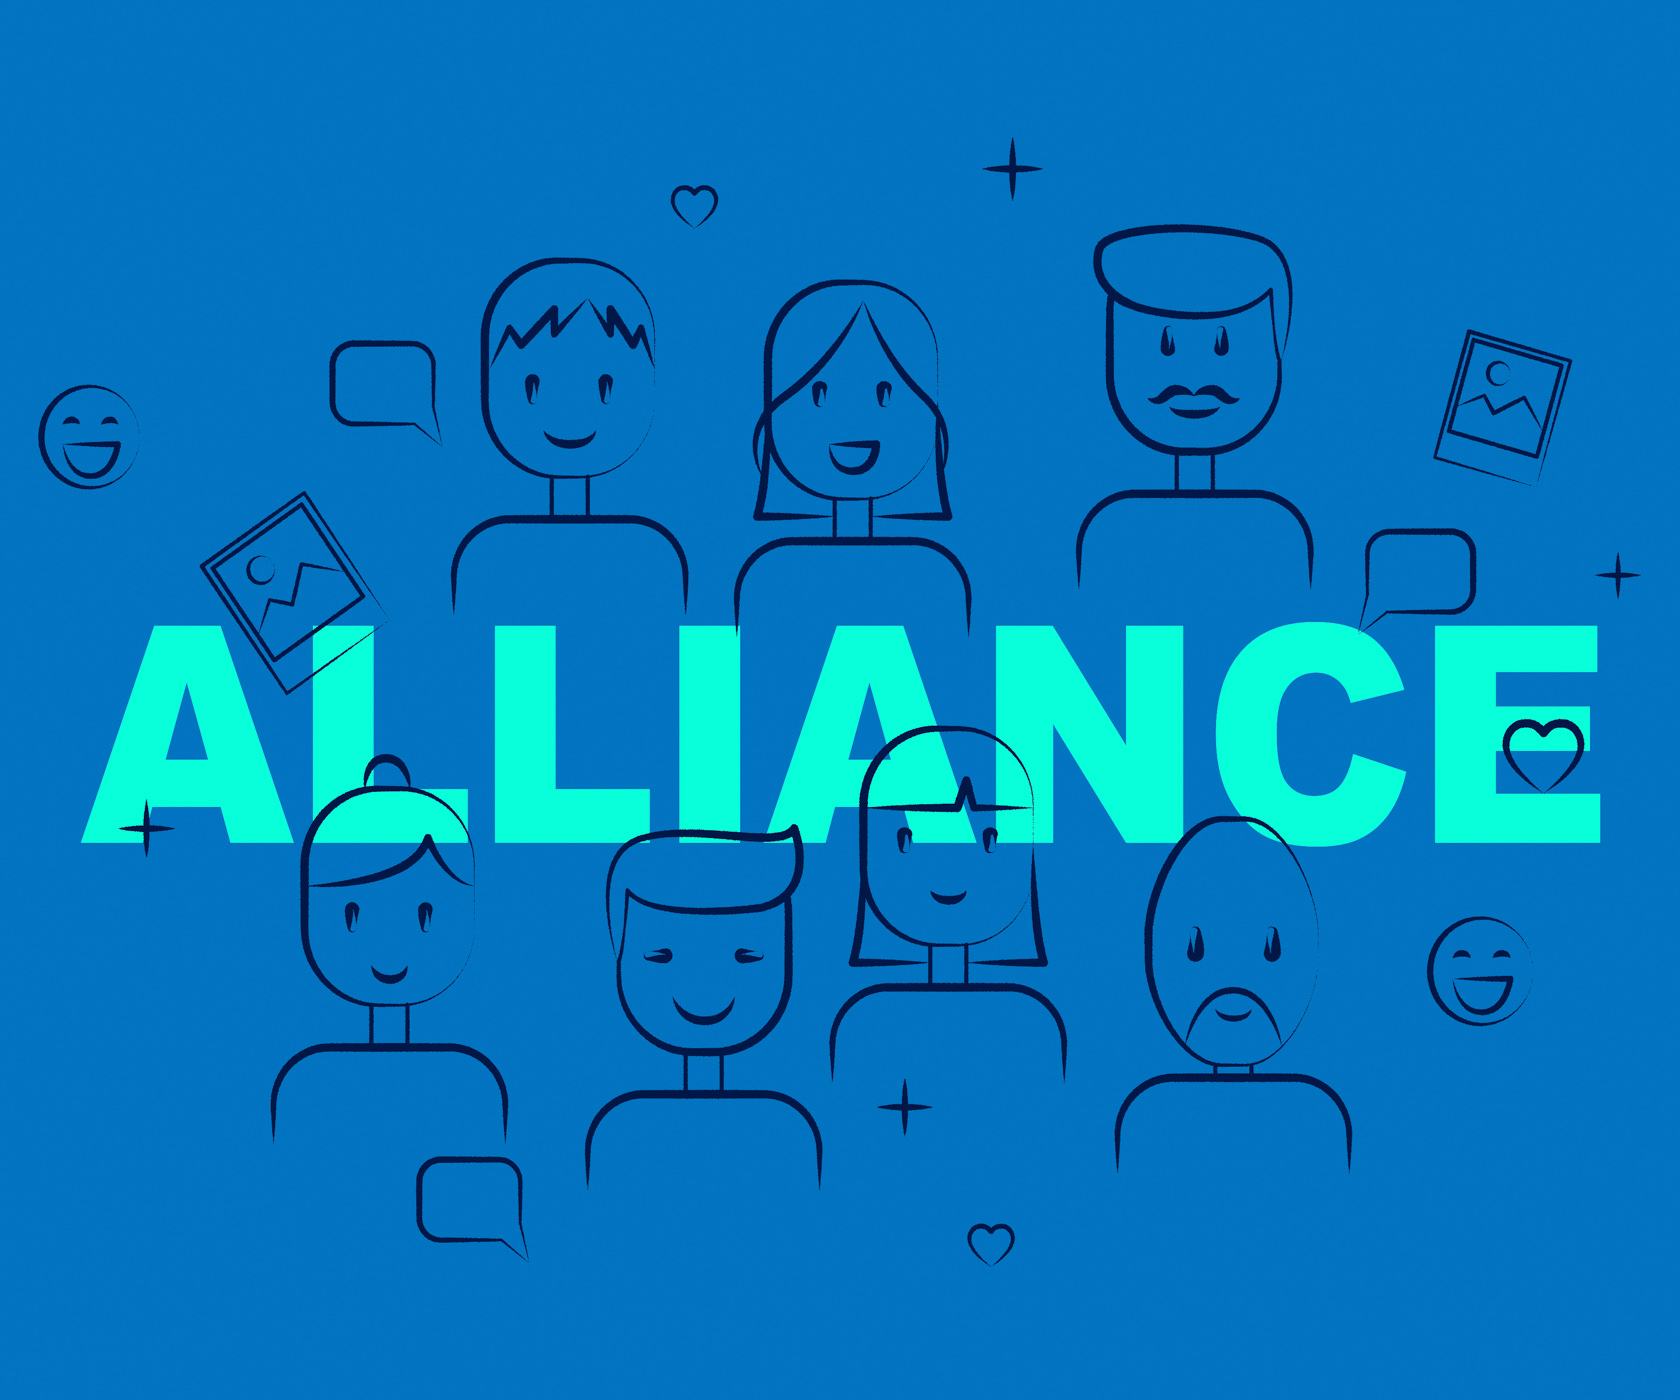 Alliance of people means cooperate cooperation and team photo